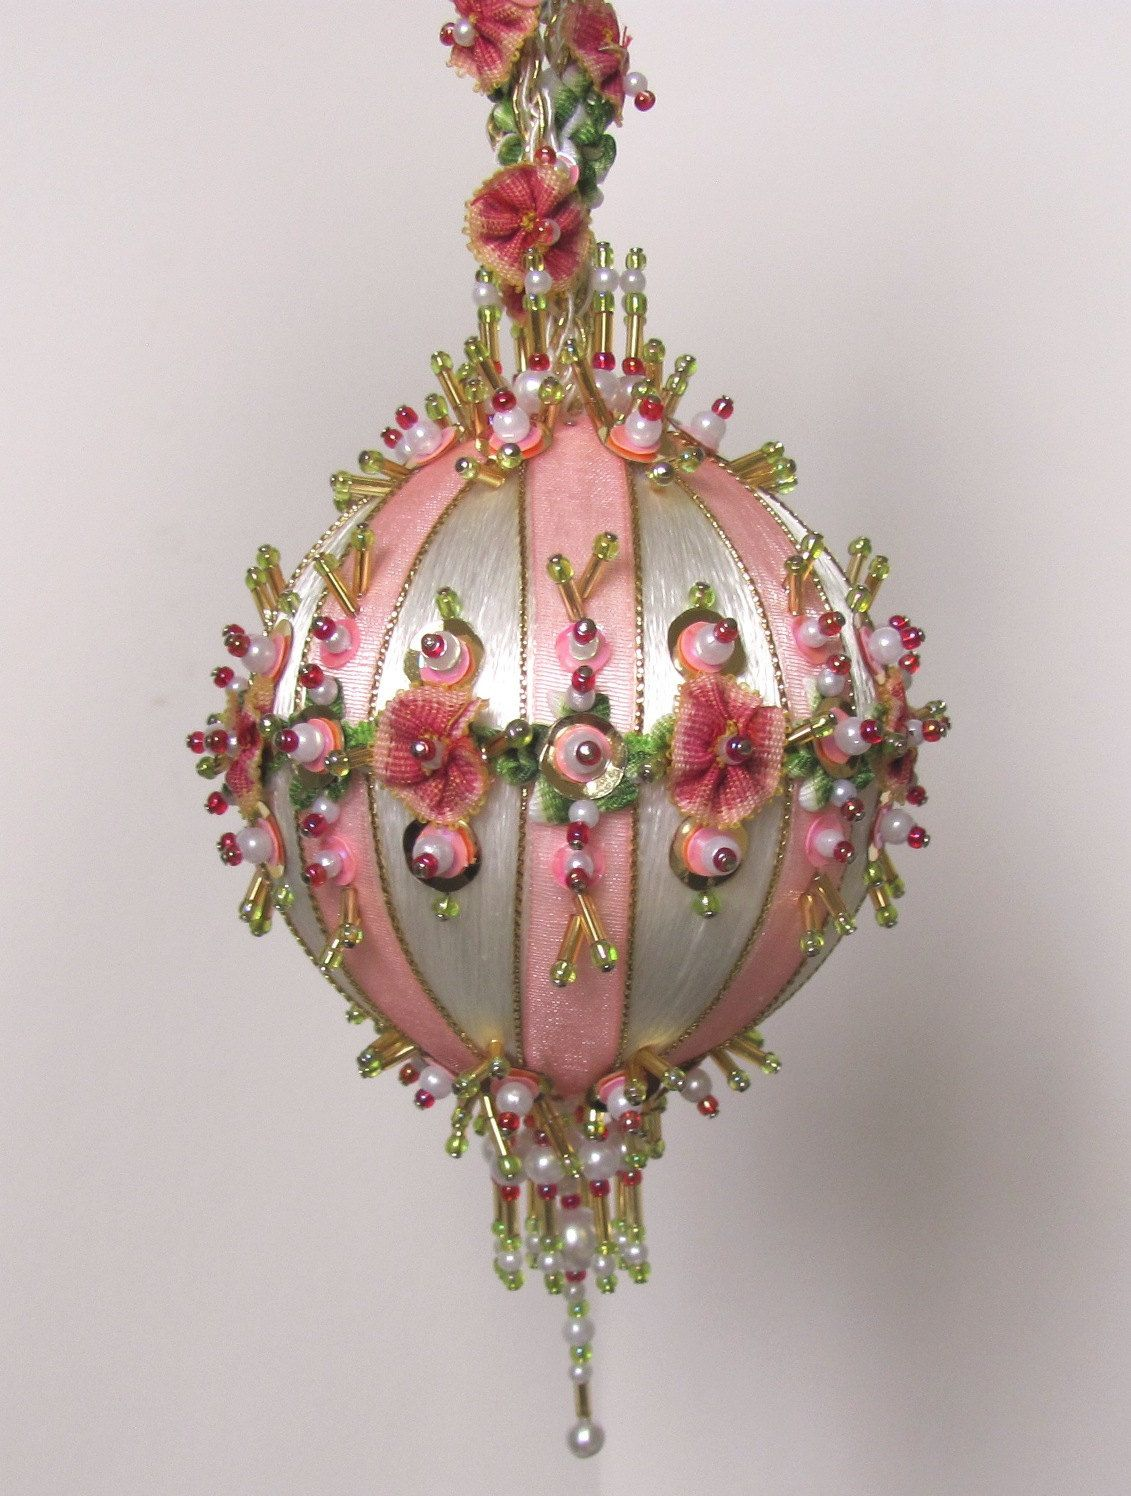 Beaded Christmas Ornament Kit Antoinette Ii By Glimmertree On Etsy 32 7 Victorian Christmas Ornaments Beaded Christmas Ornaments Handmade Christmas Ornaments